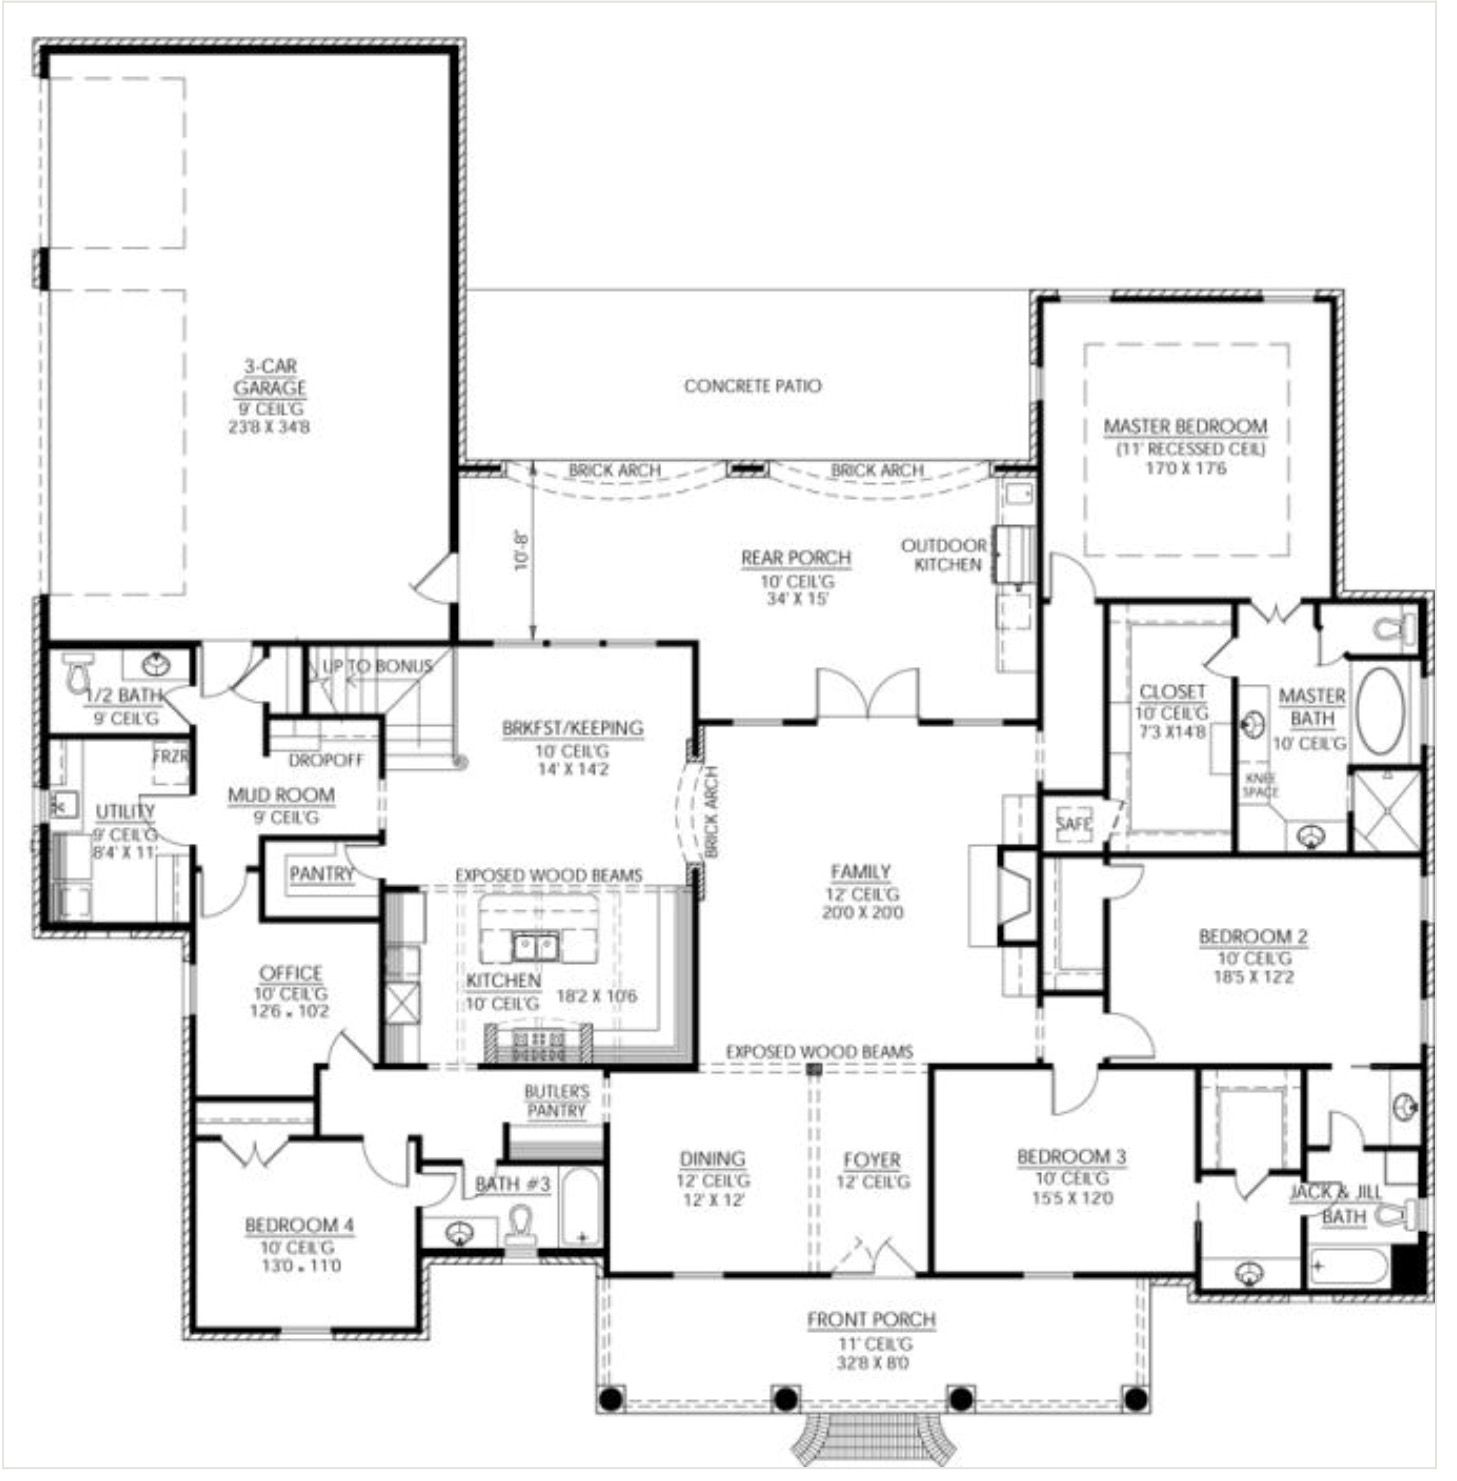 This house plan is pretty much perfect house plans in